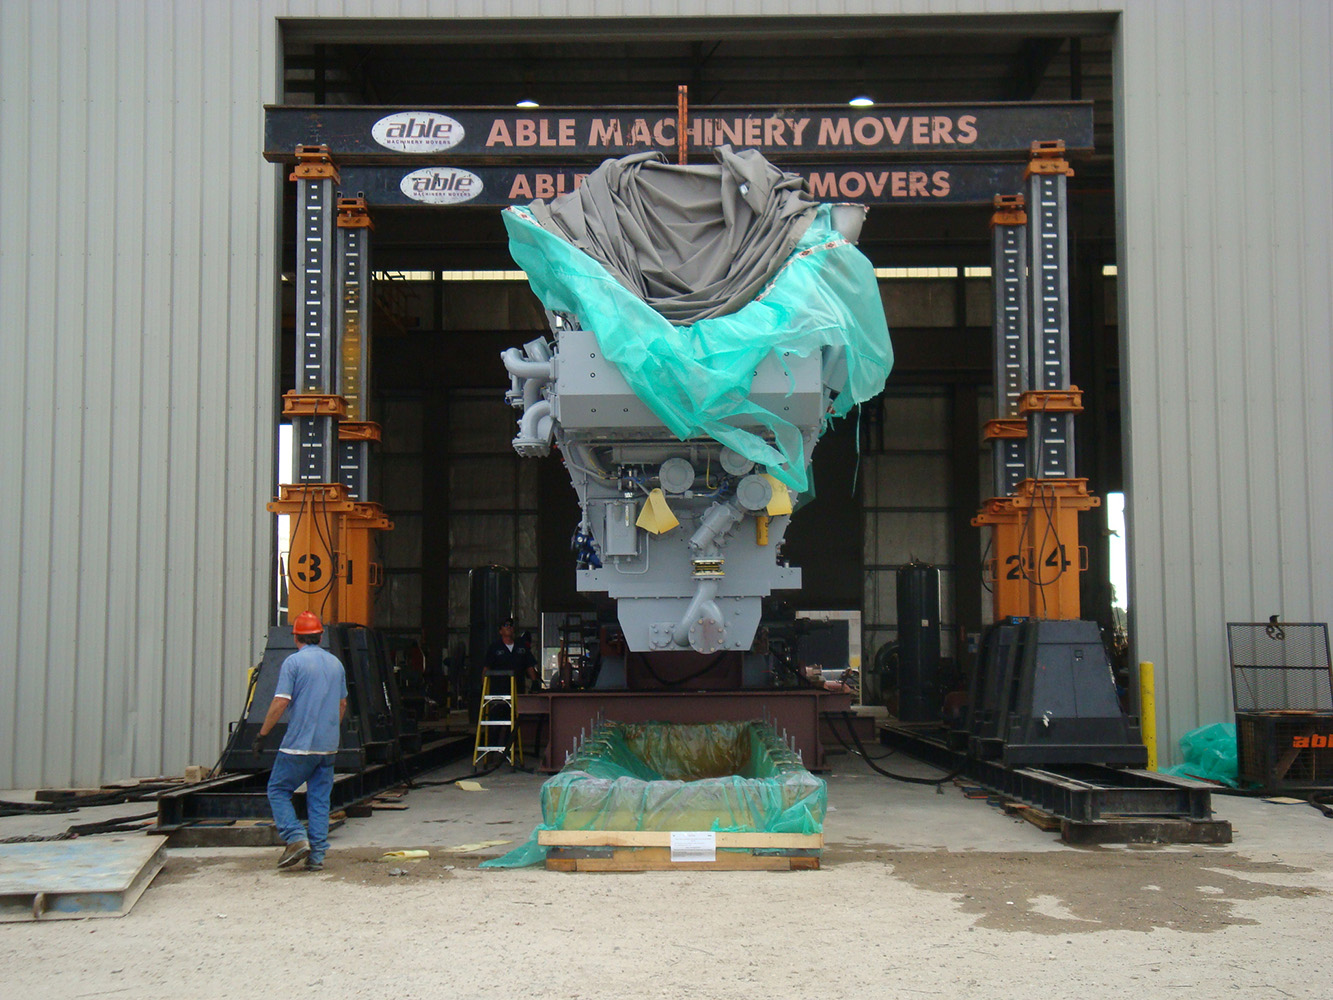 Rigging Services - Able Machinery Movers